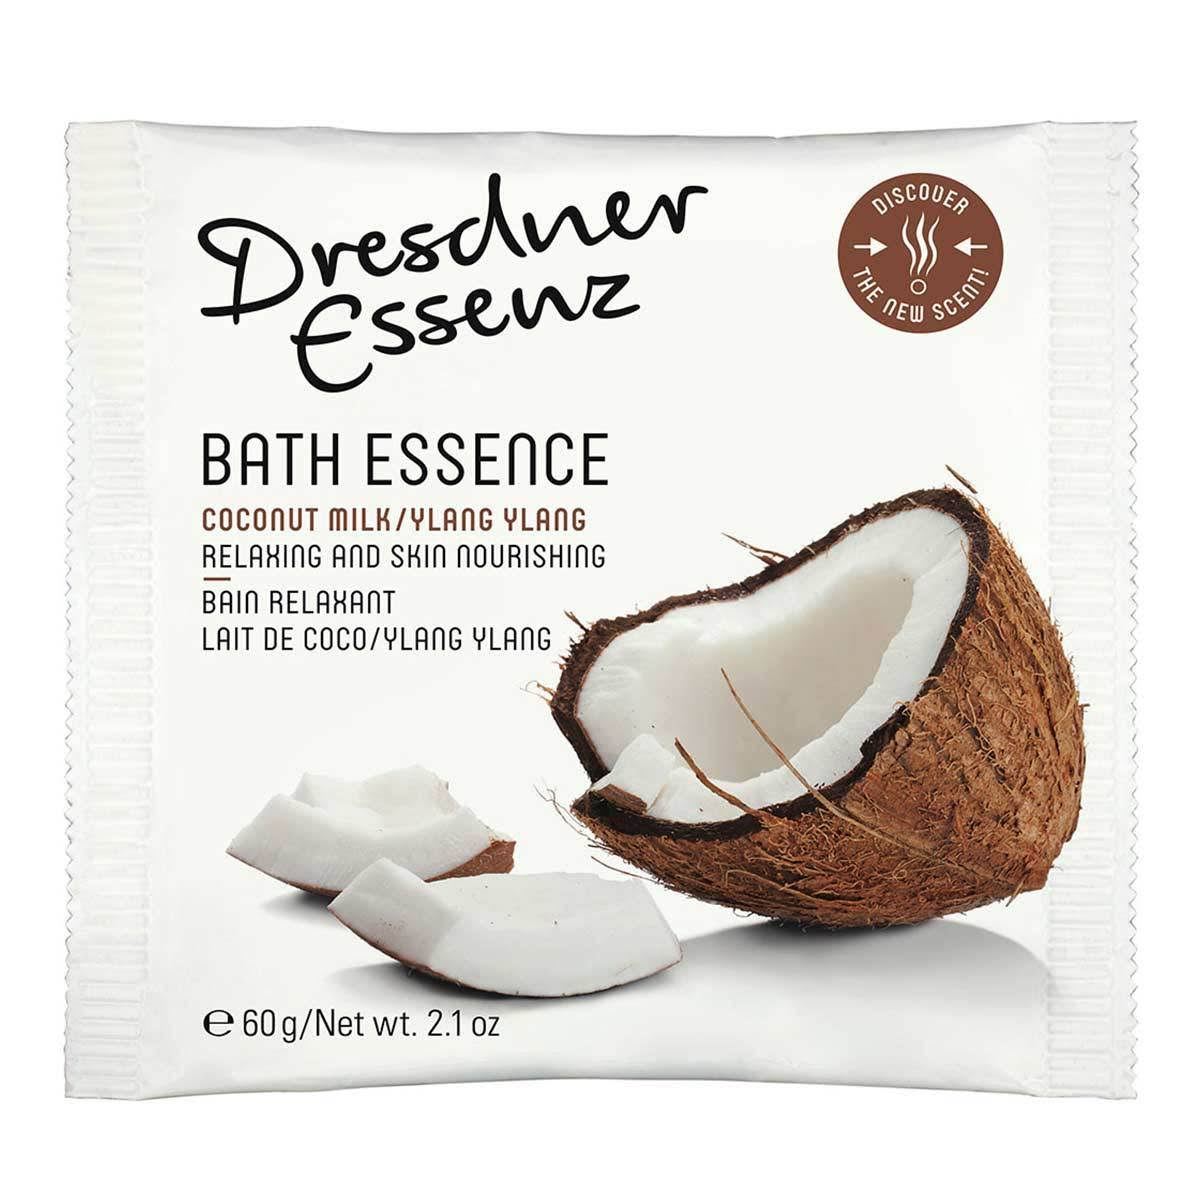 Dresdner Essenz Bath Essence Powder - Coconut Milk & Ylang Ylang, 60g